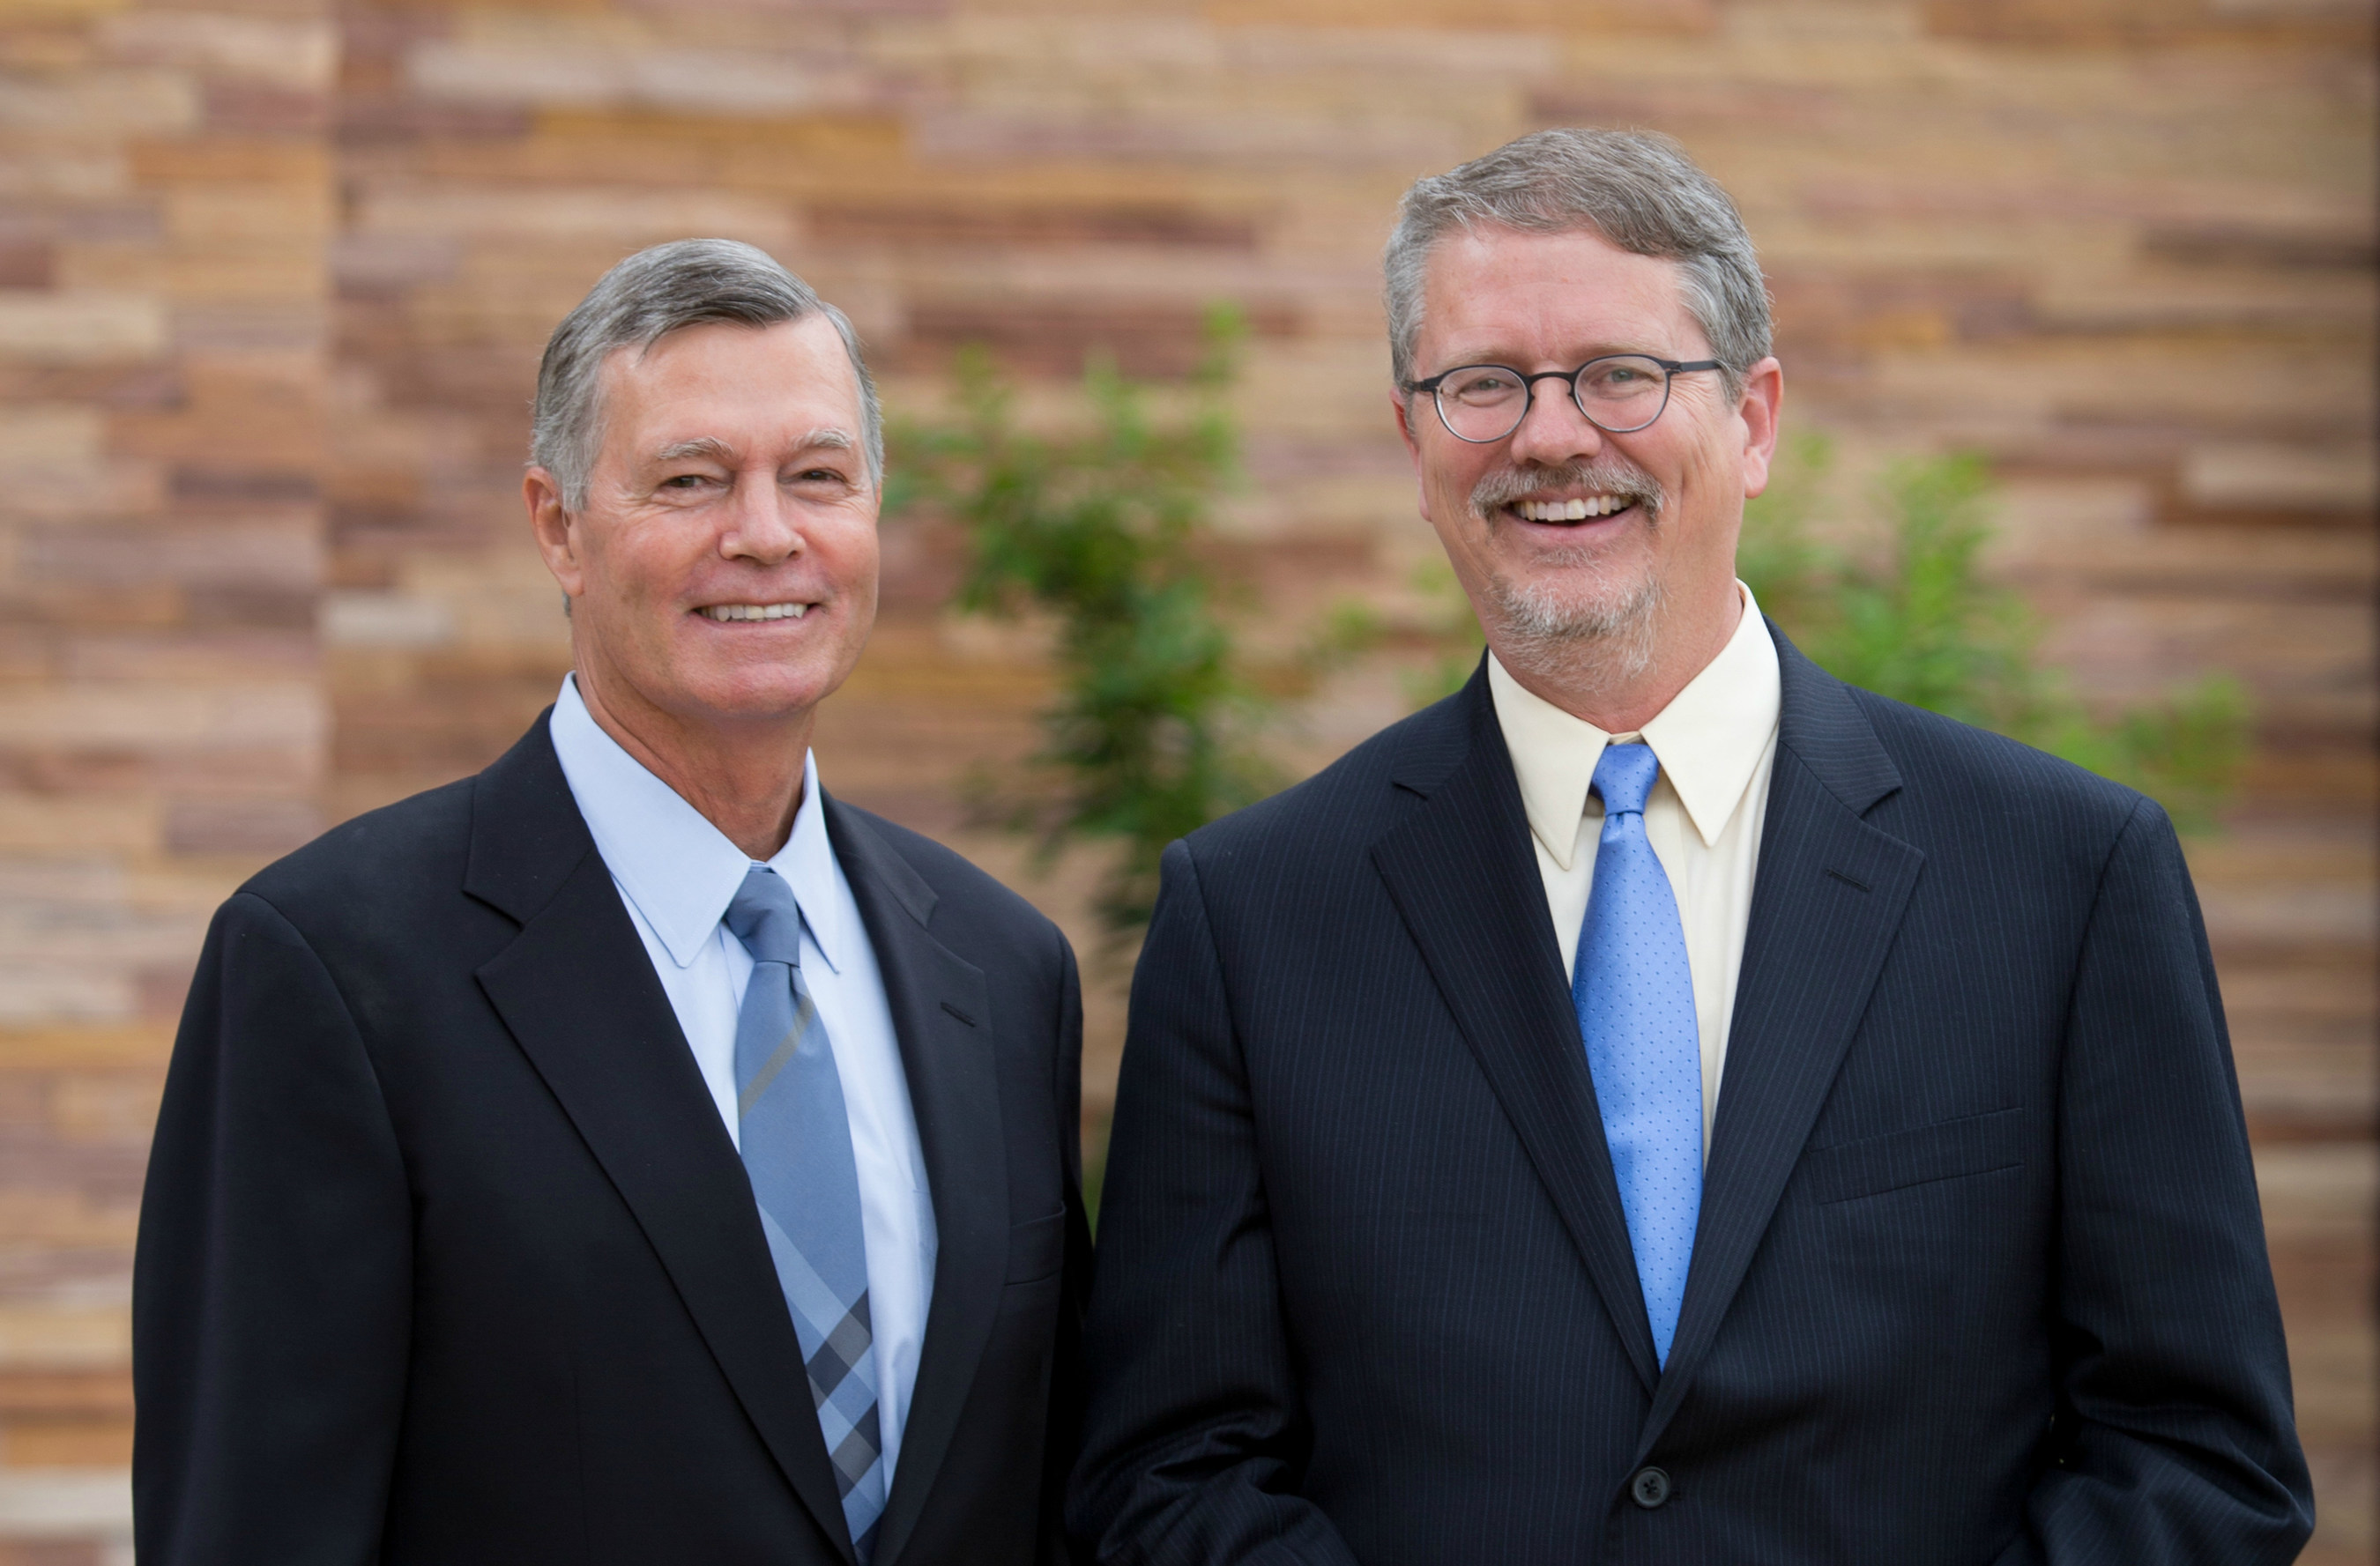 L to R: Steven M. Hilton, current Chairman, President & CEO of the Conrad N. Hilton Foundation, and Peter Laugharn, Incoming President & CEO.